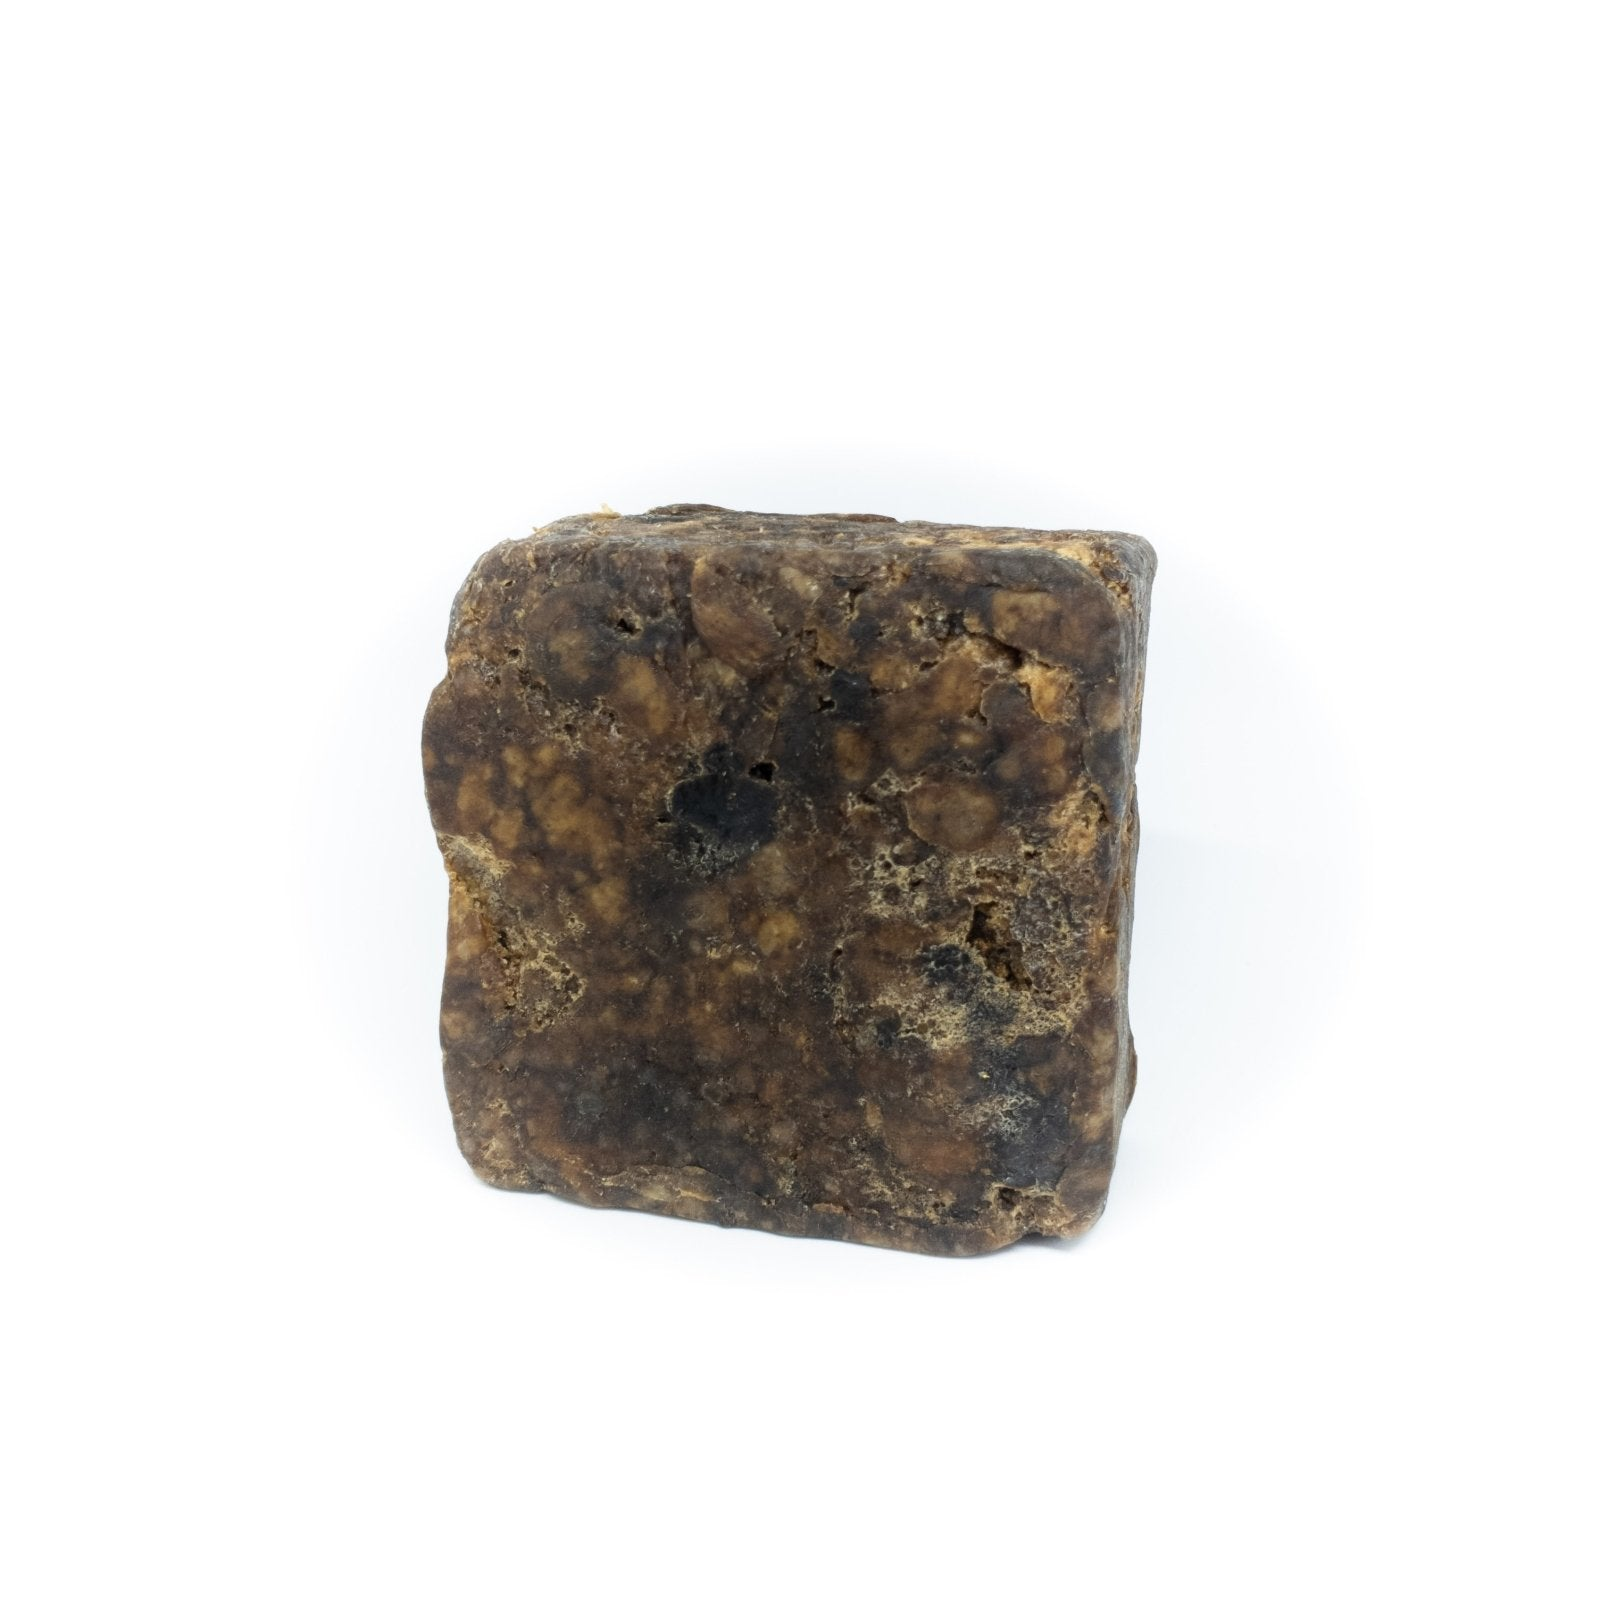 African Black Soap Bar - Neter Gold - NTRGLD - NETER GOLD - All natural body care products designed to increase your natural godly glow. - hair growth - eczema - dry skin